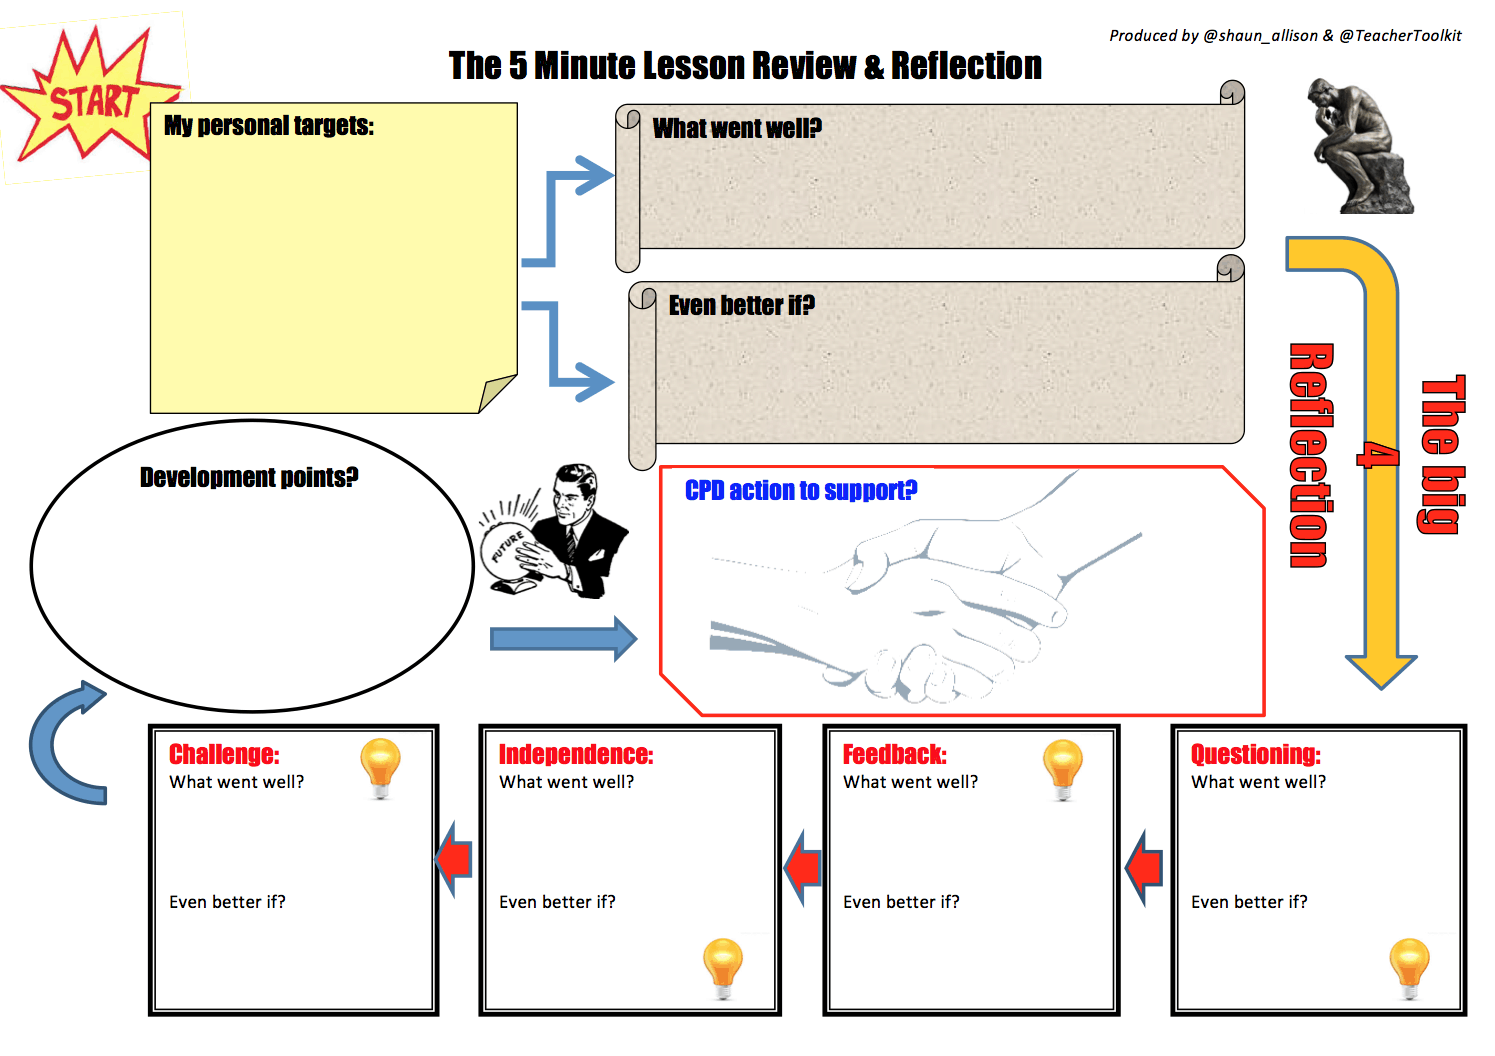 The 5 Minute Lesson Review